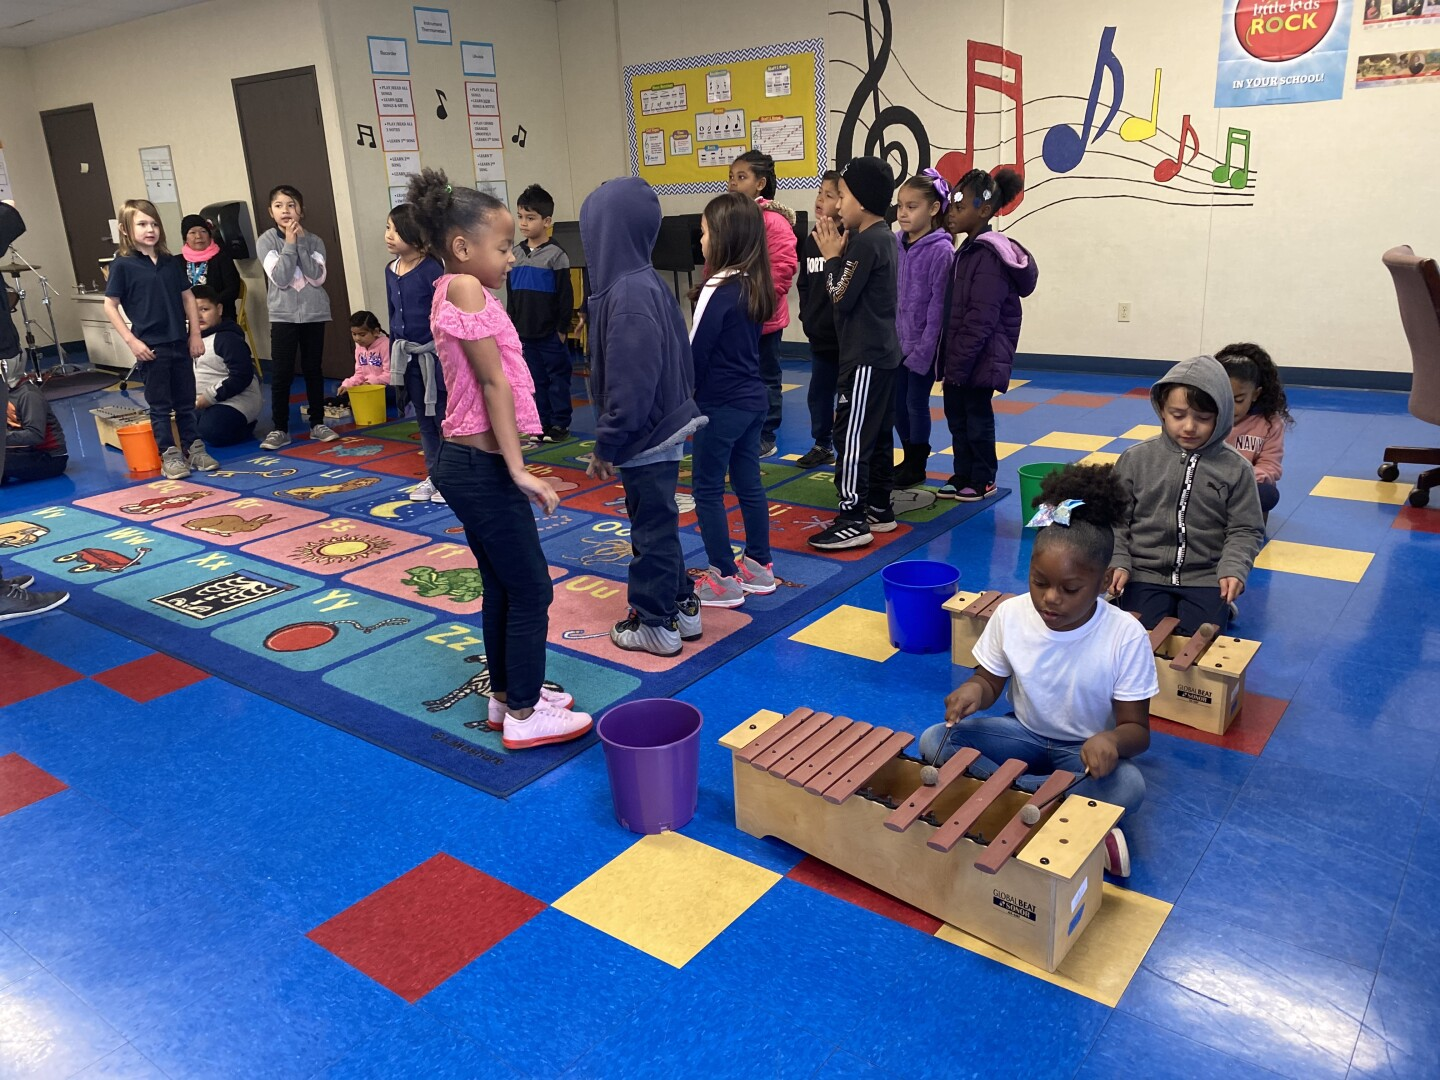 Students assemble in a classroom with some lining up while others play music on a xylophone.